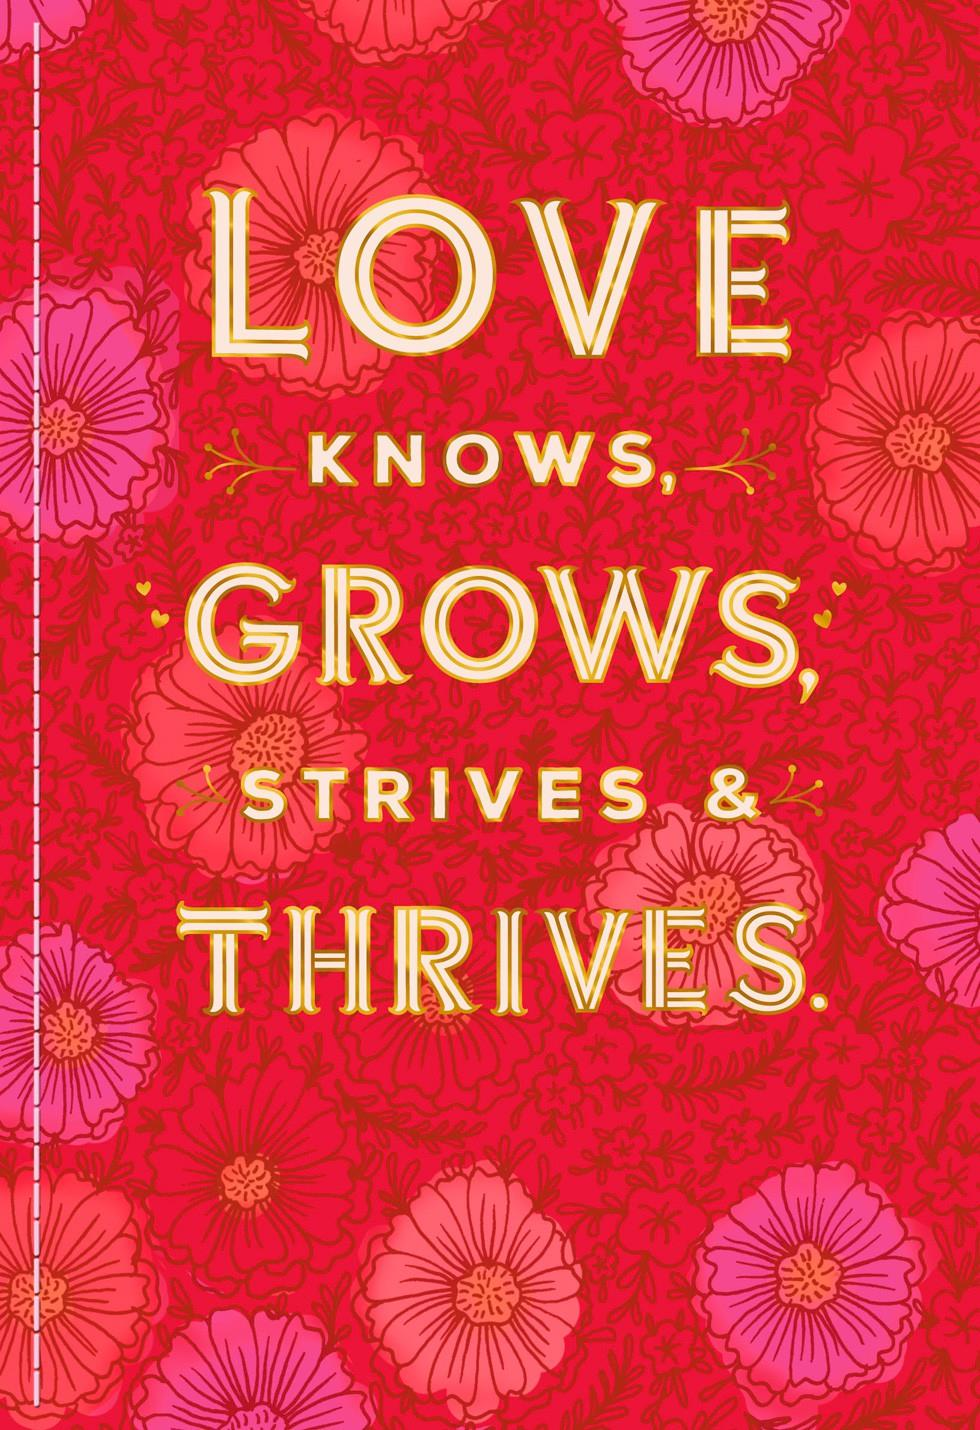 love thrives valentine's day card for someone special